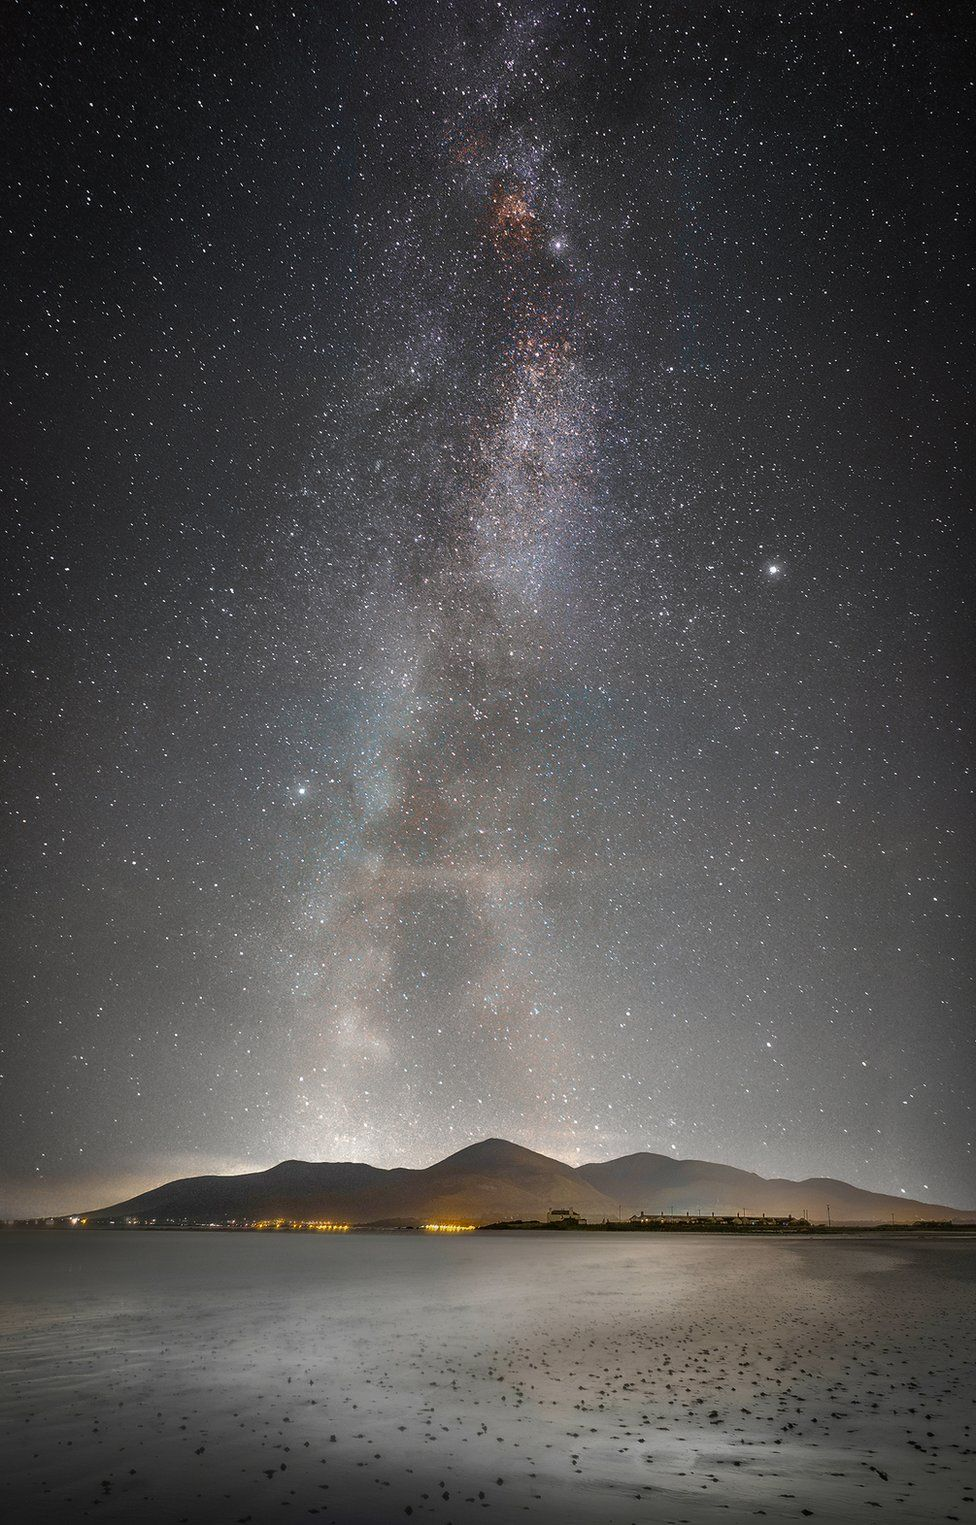 The Milky Way over the Mourne mountains as seen from Tyrella Beach in County Down